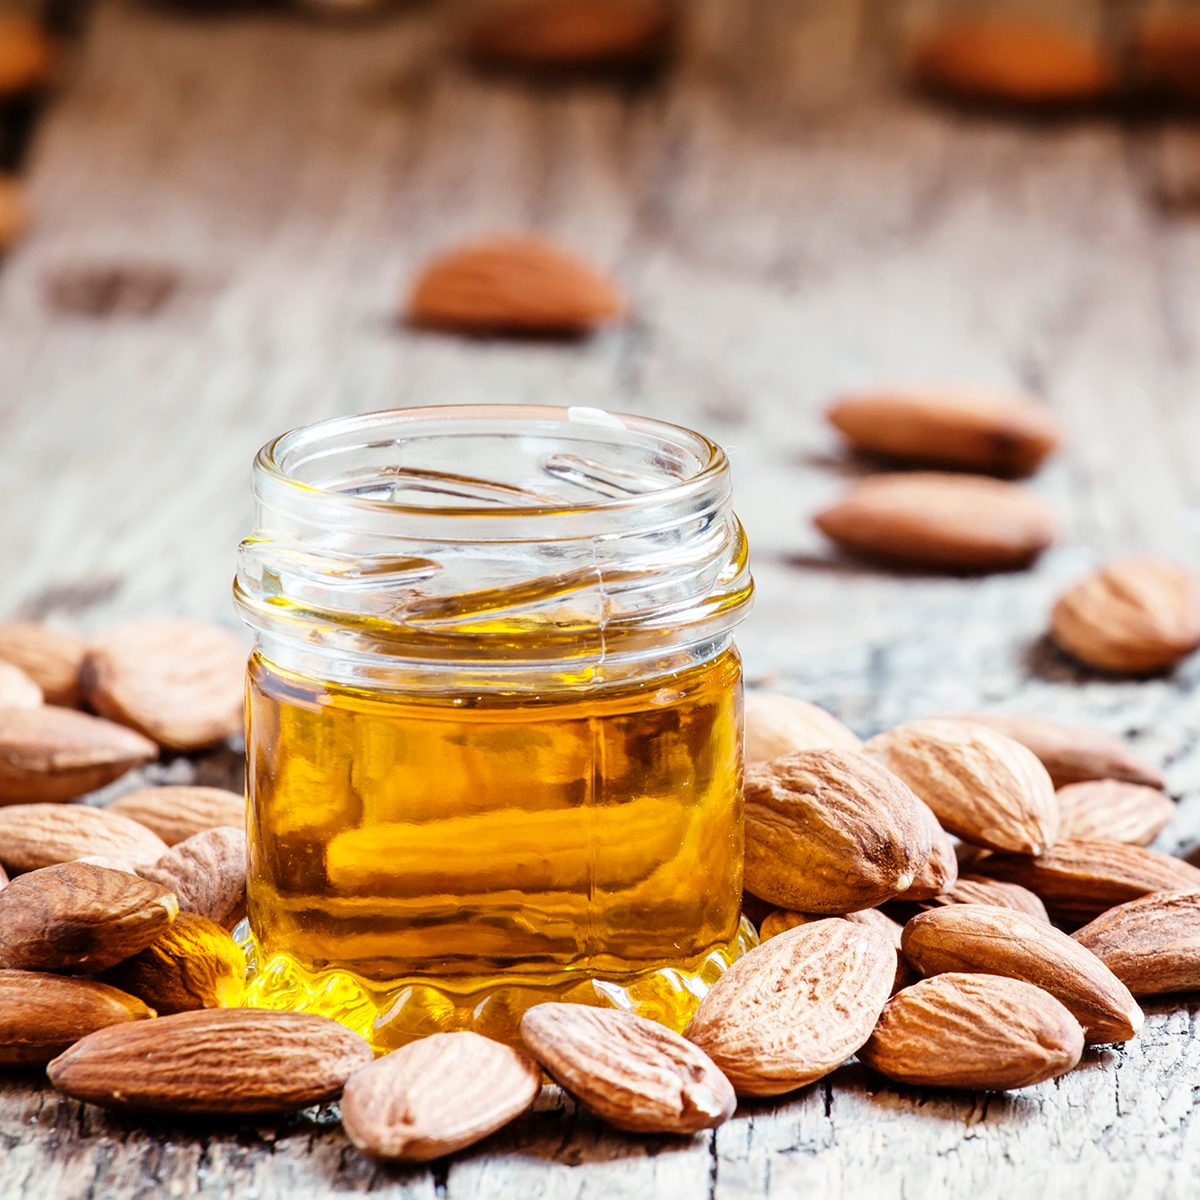 healthy oils Sweet Almond Oil, first extraction, in a small glass jar, dry almond nuts on an old wooden background, selective focus